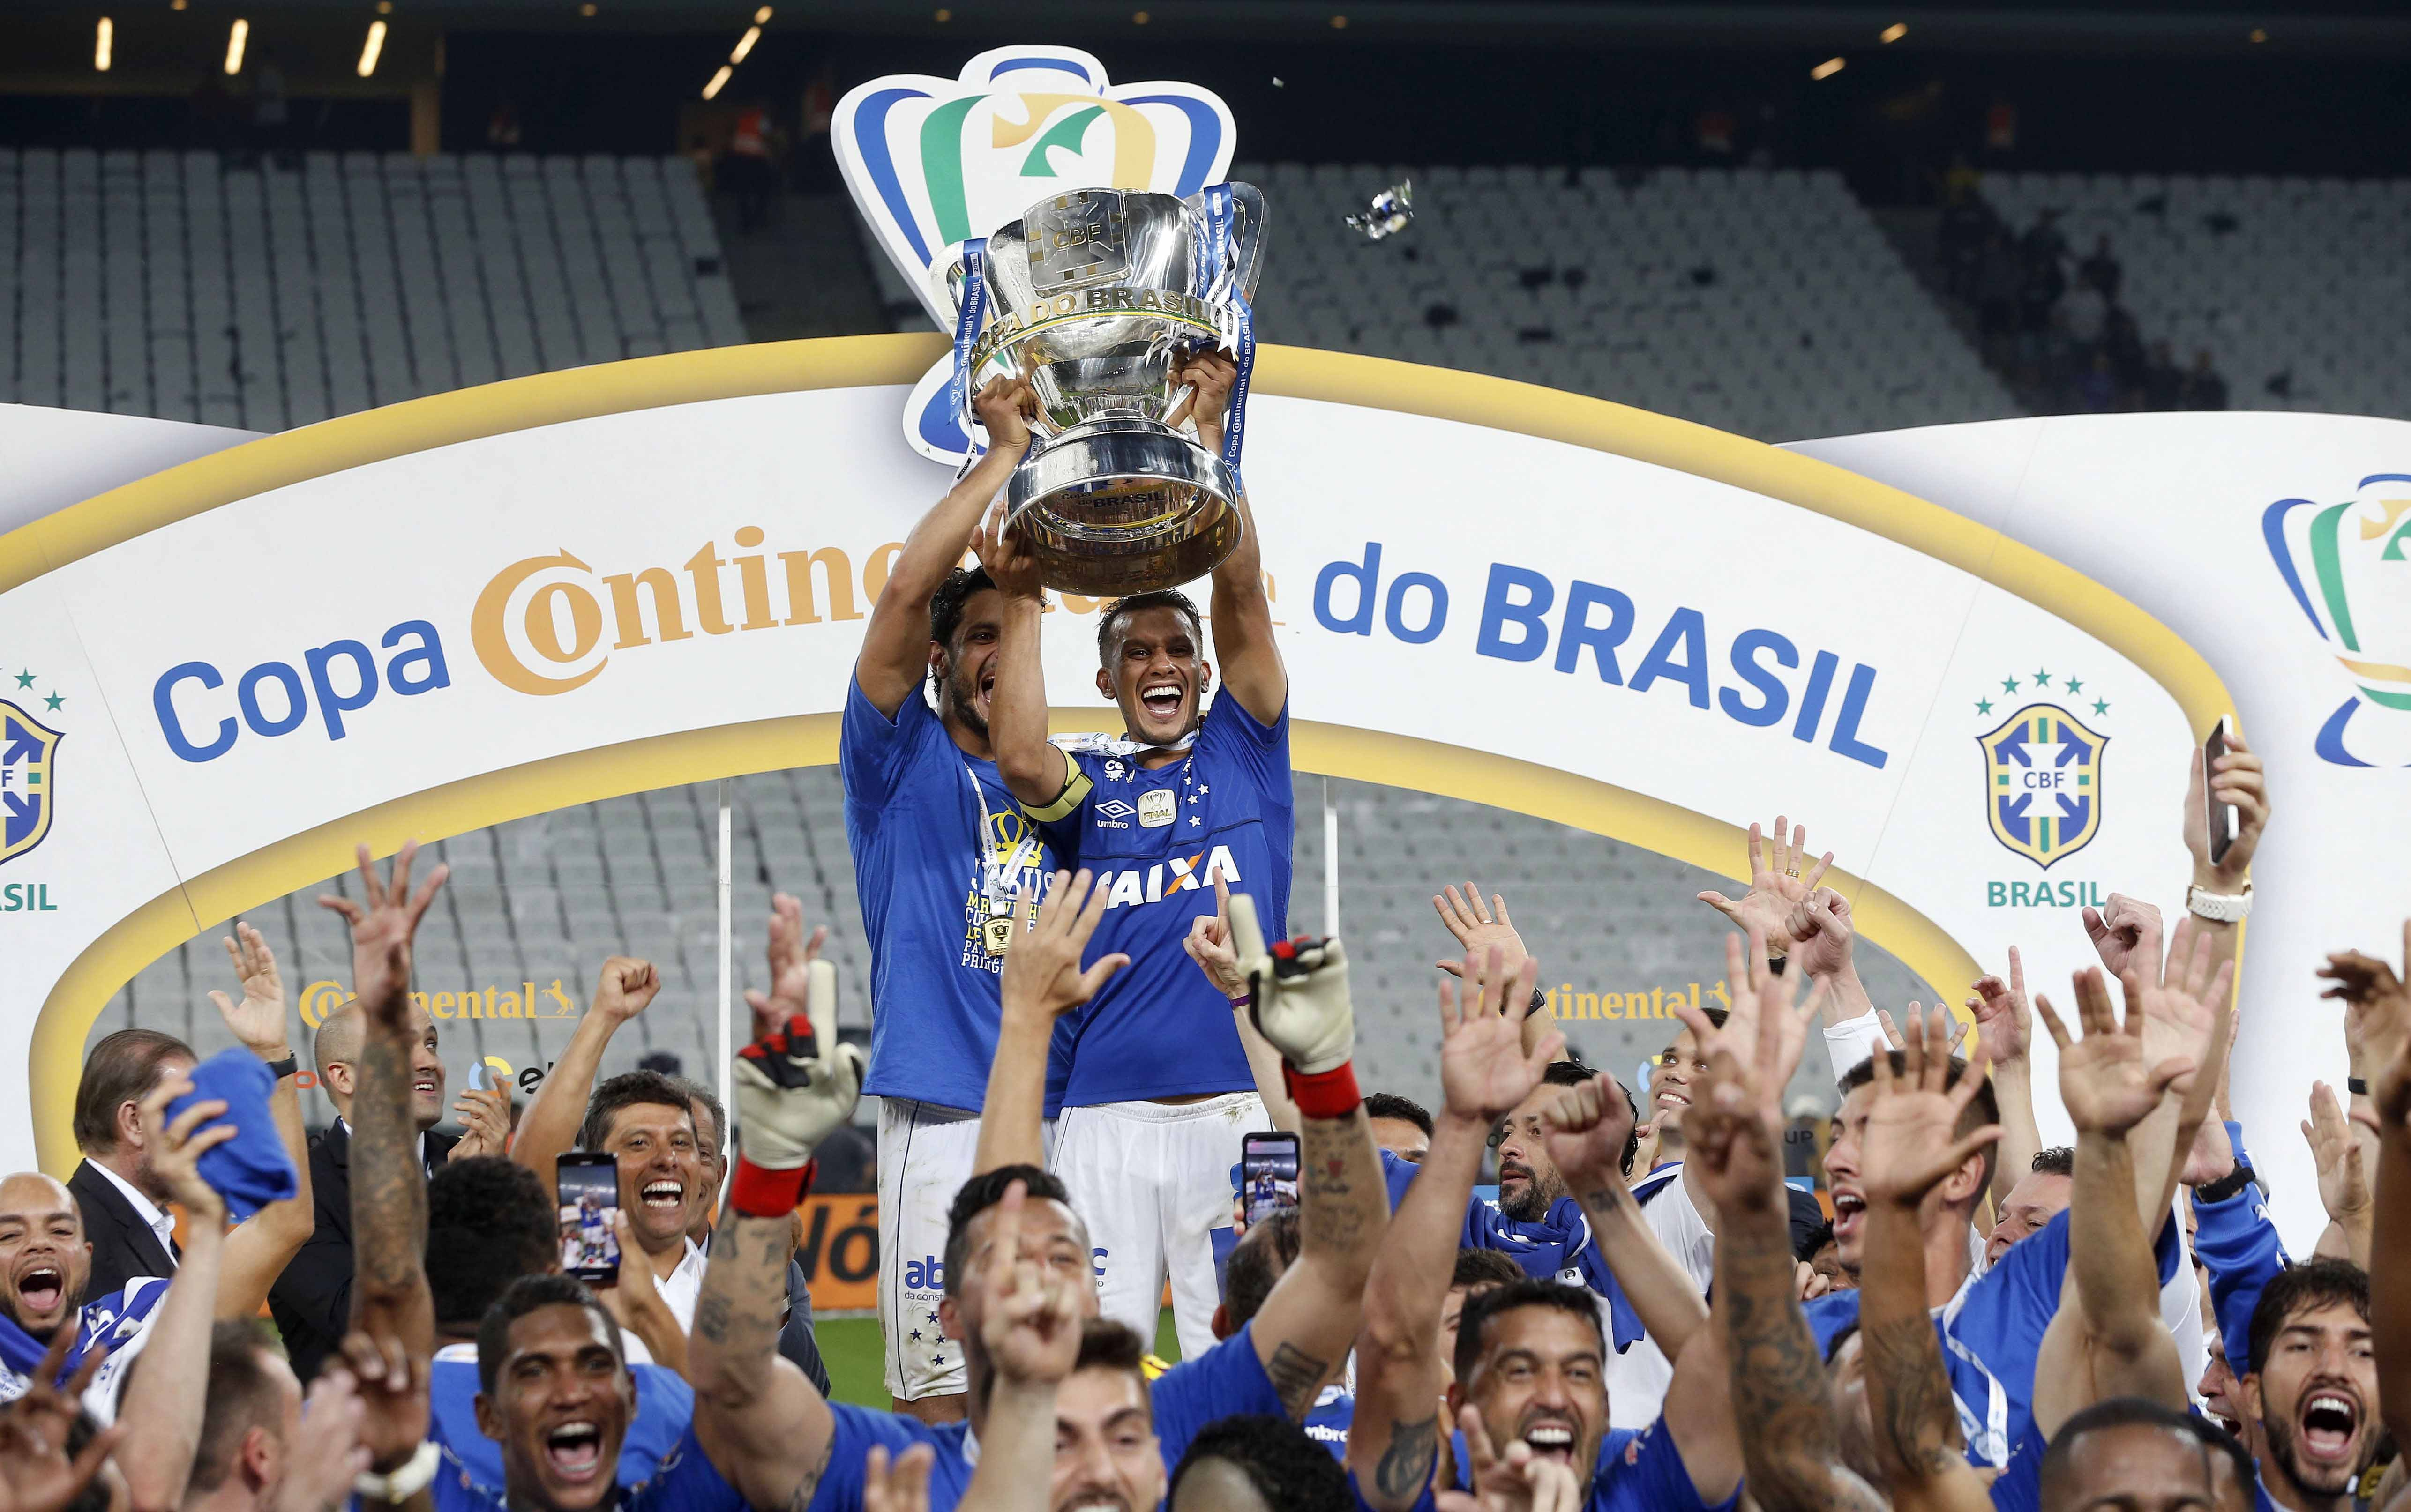 Cruzeiro players lift the Brazil Cup as they celebrate their victory over Corinthians in Sao Paulo, Brazil on Wednesday.